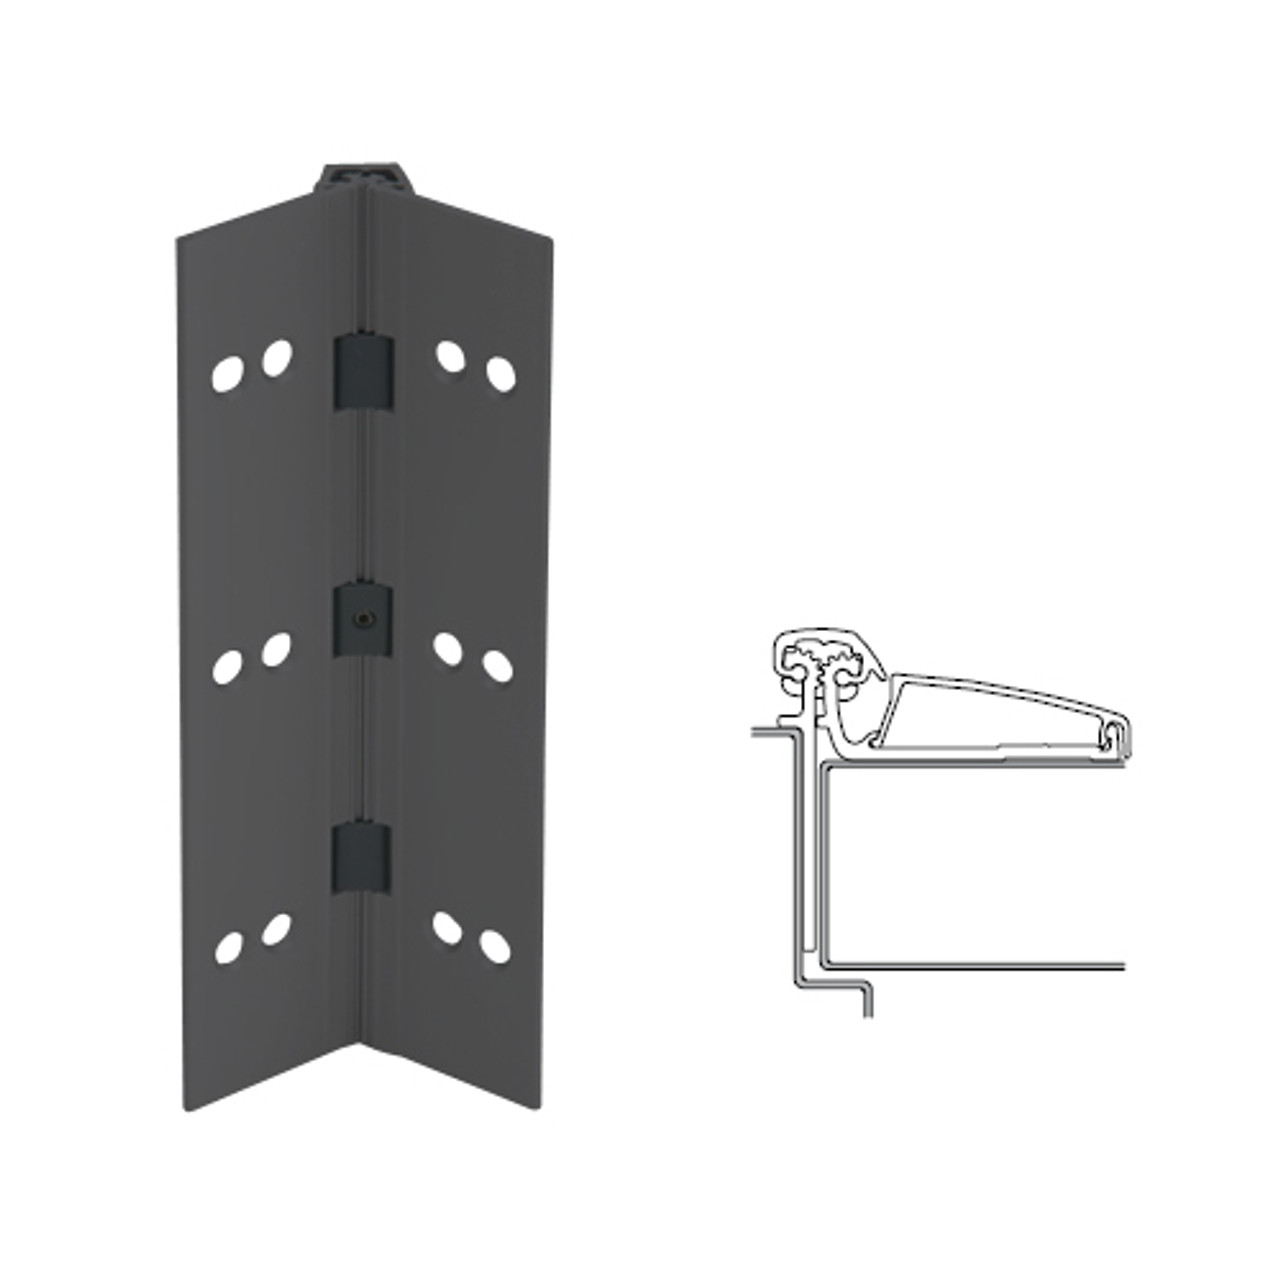 046XY-315AN-85-TFWD IVES Adjustable Half Surface Continuous Geared Hinges with Thread Forming Screws in Anodized Black